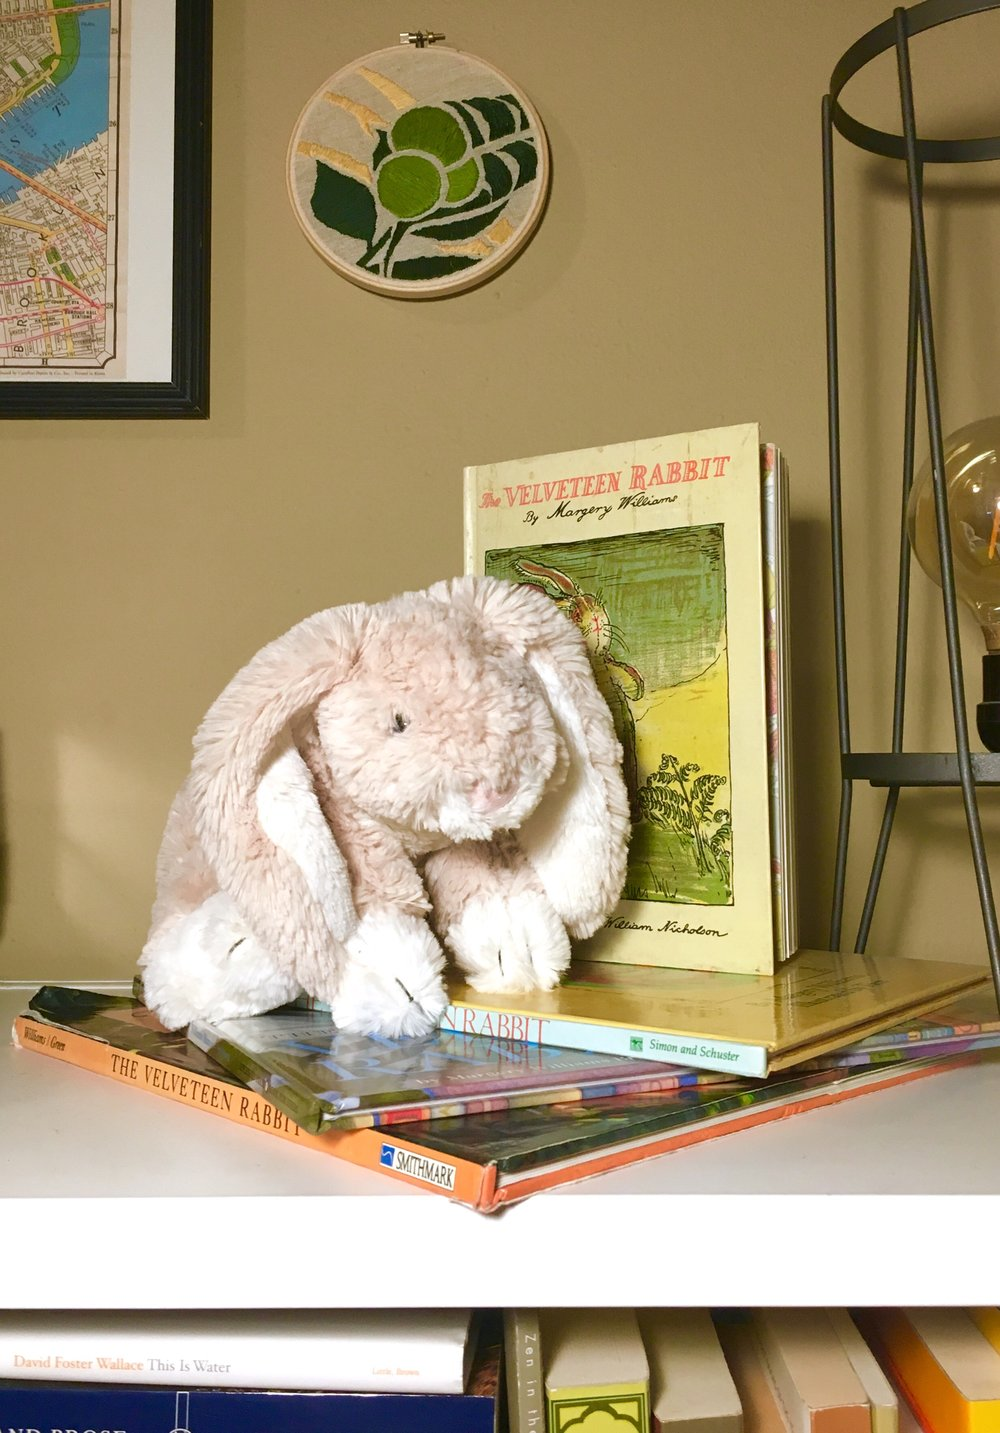 Our mascot with various editions of his biography.